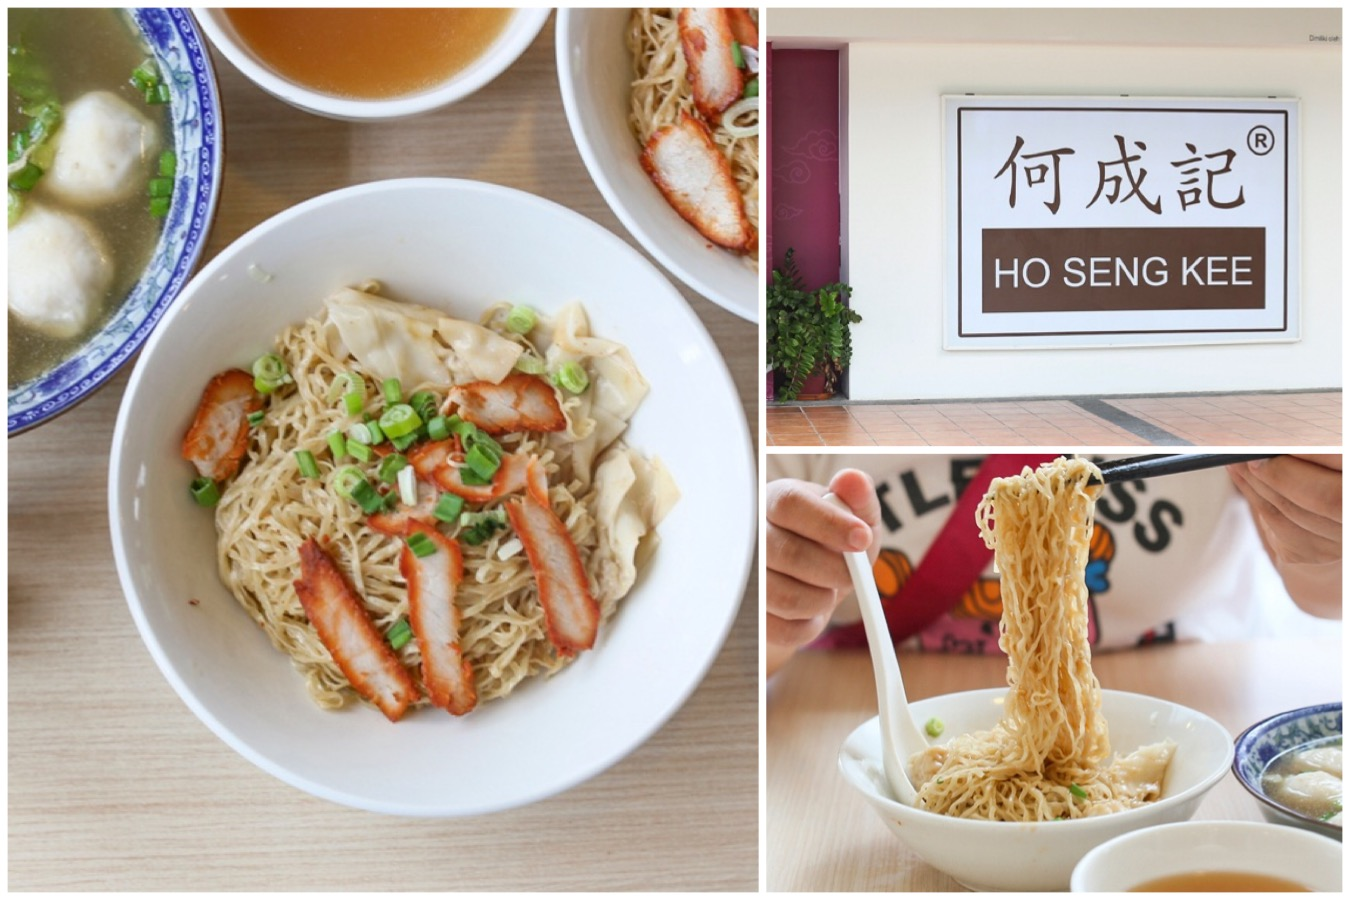 Ho Seng Kee 何成記云吞面世家 - Famous Wanton Mee With Nostalgic Flavour, At Johor Bahru City Square Mall